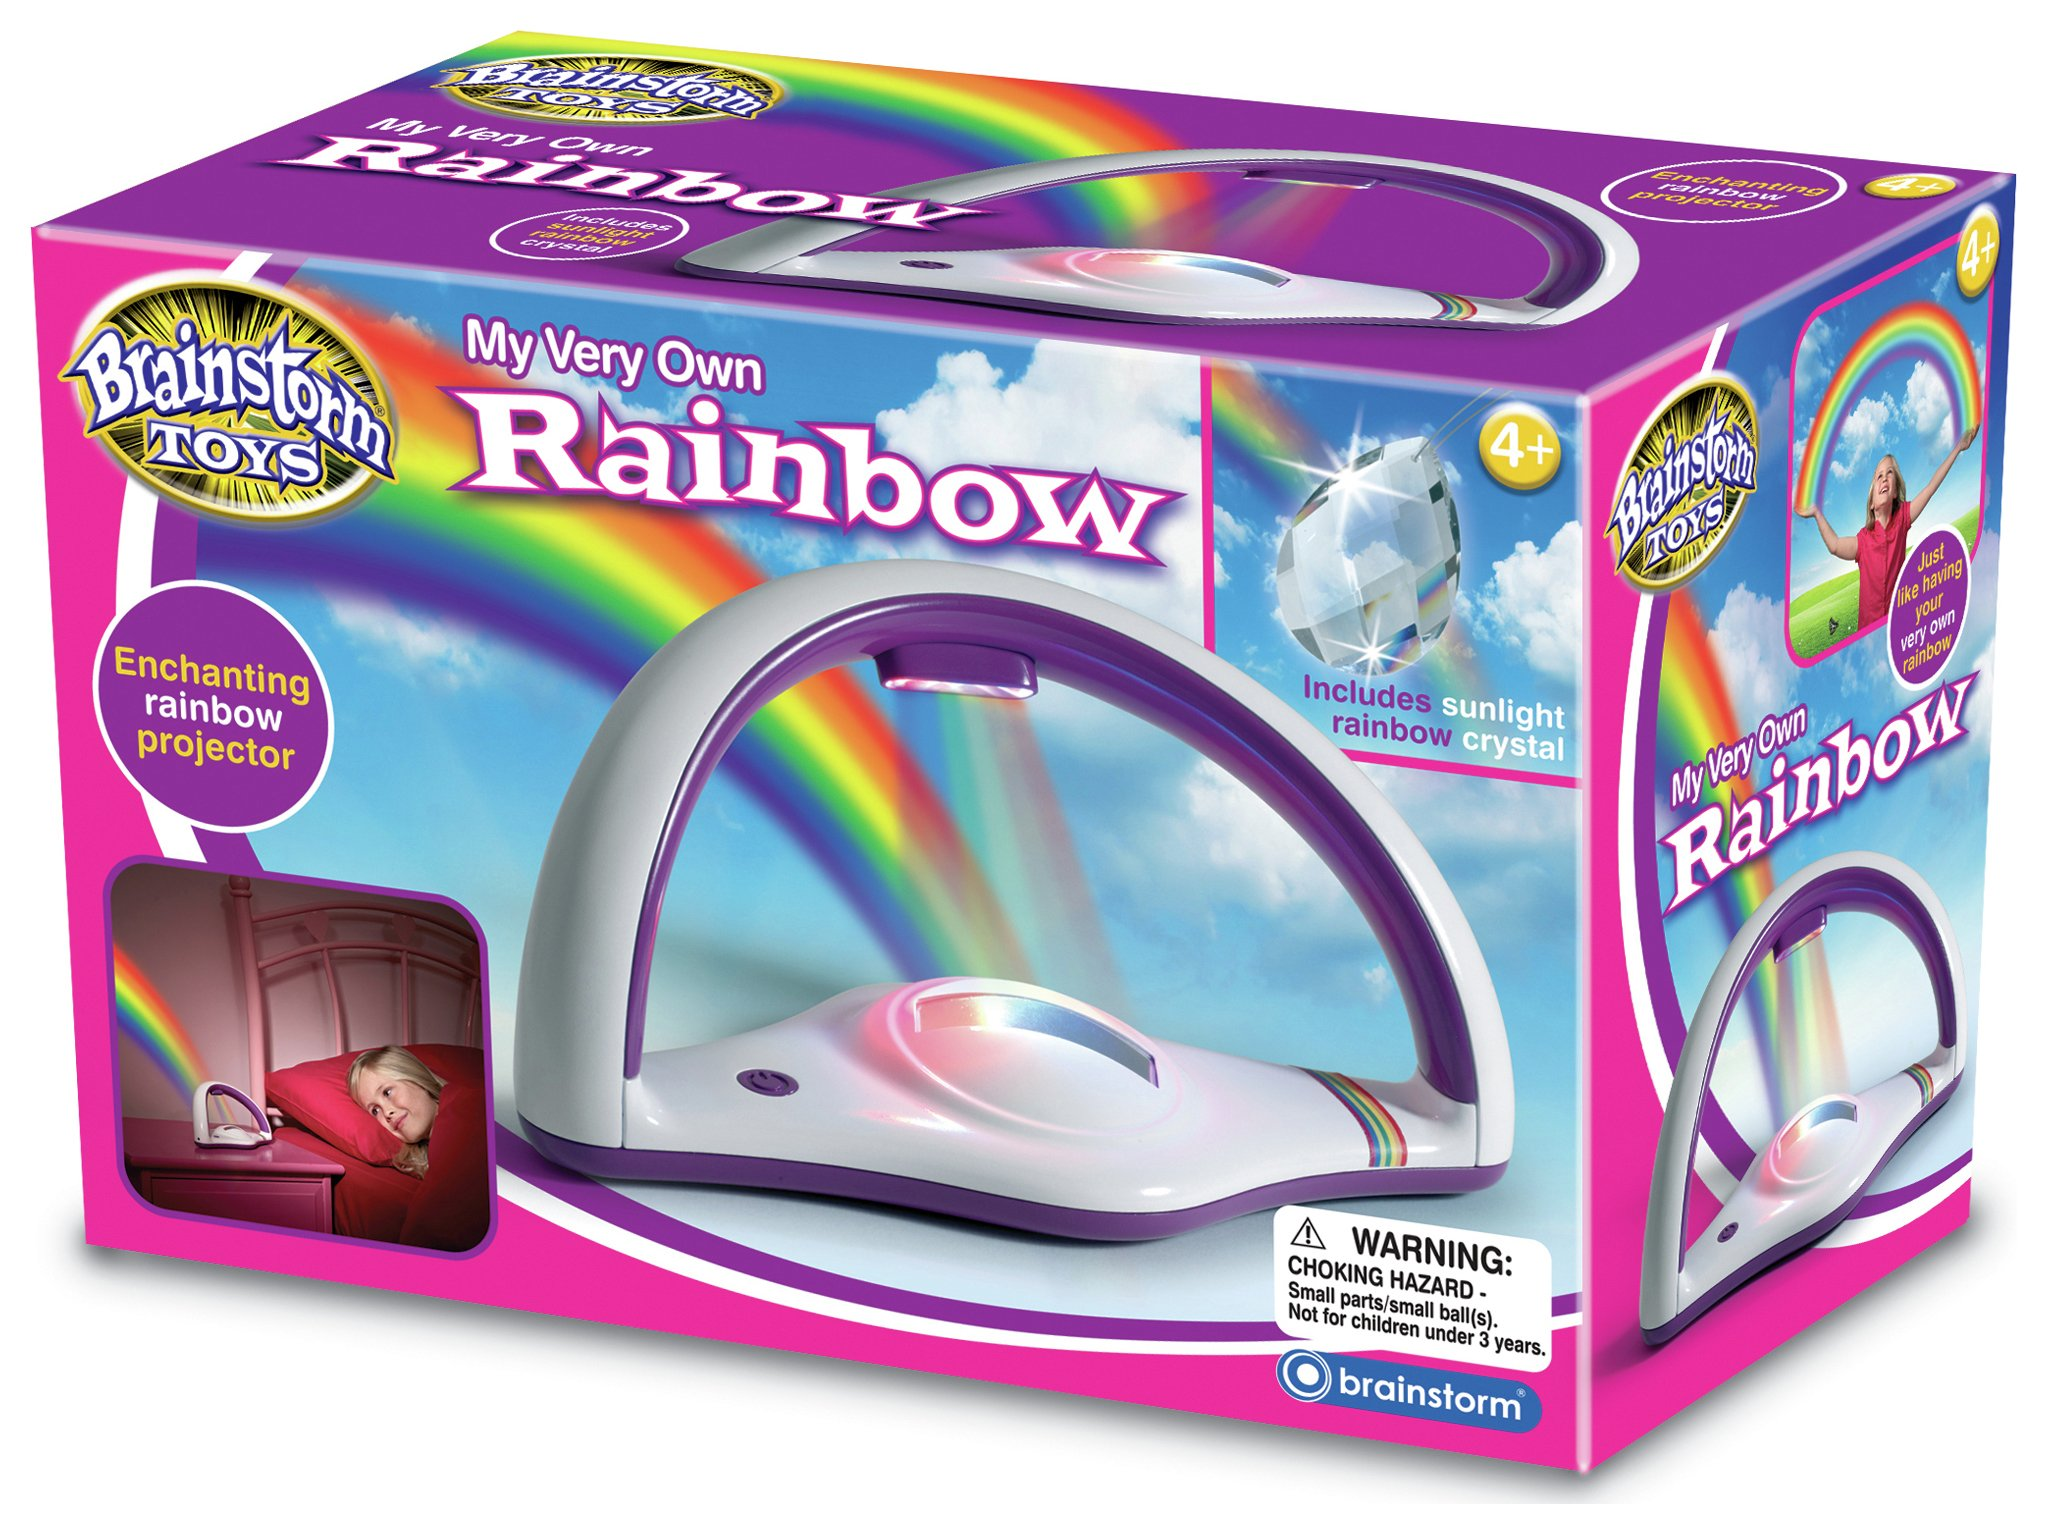 Image of Brainstorm Toys My Very Own Rainbow.